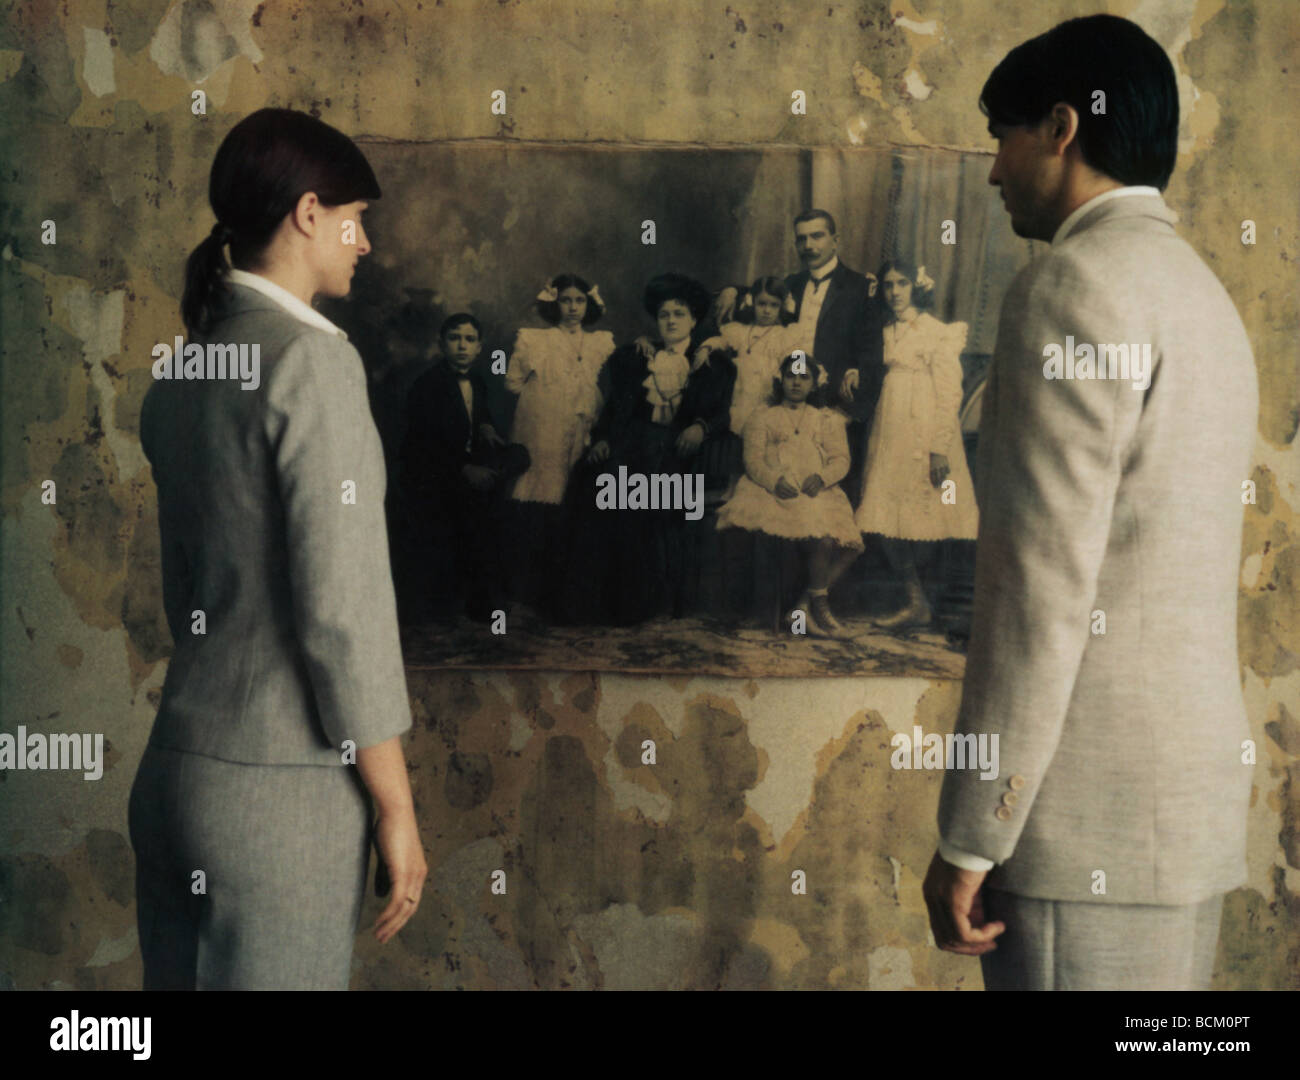 Man and woman standing side by side, looking at black and white photo on wall, rear view - Stock Image